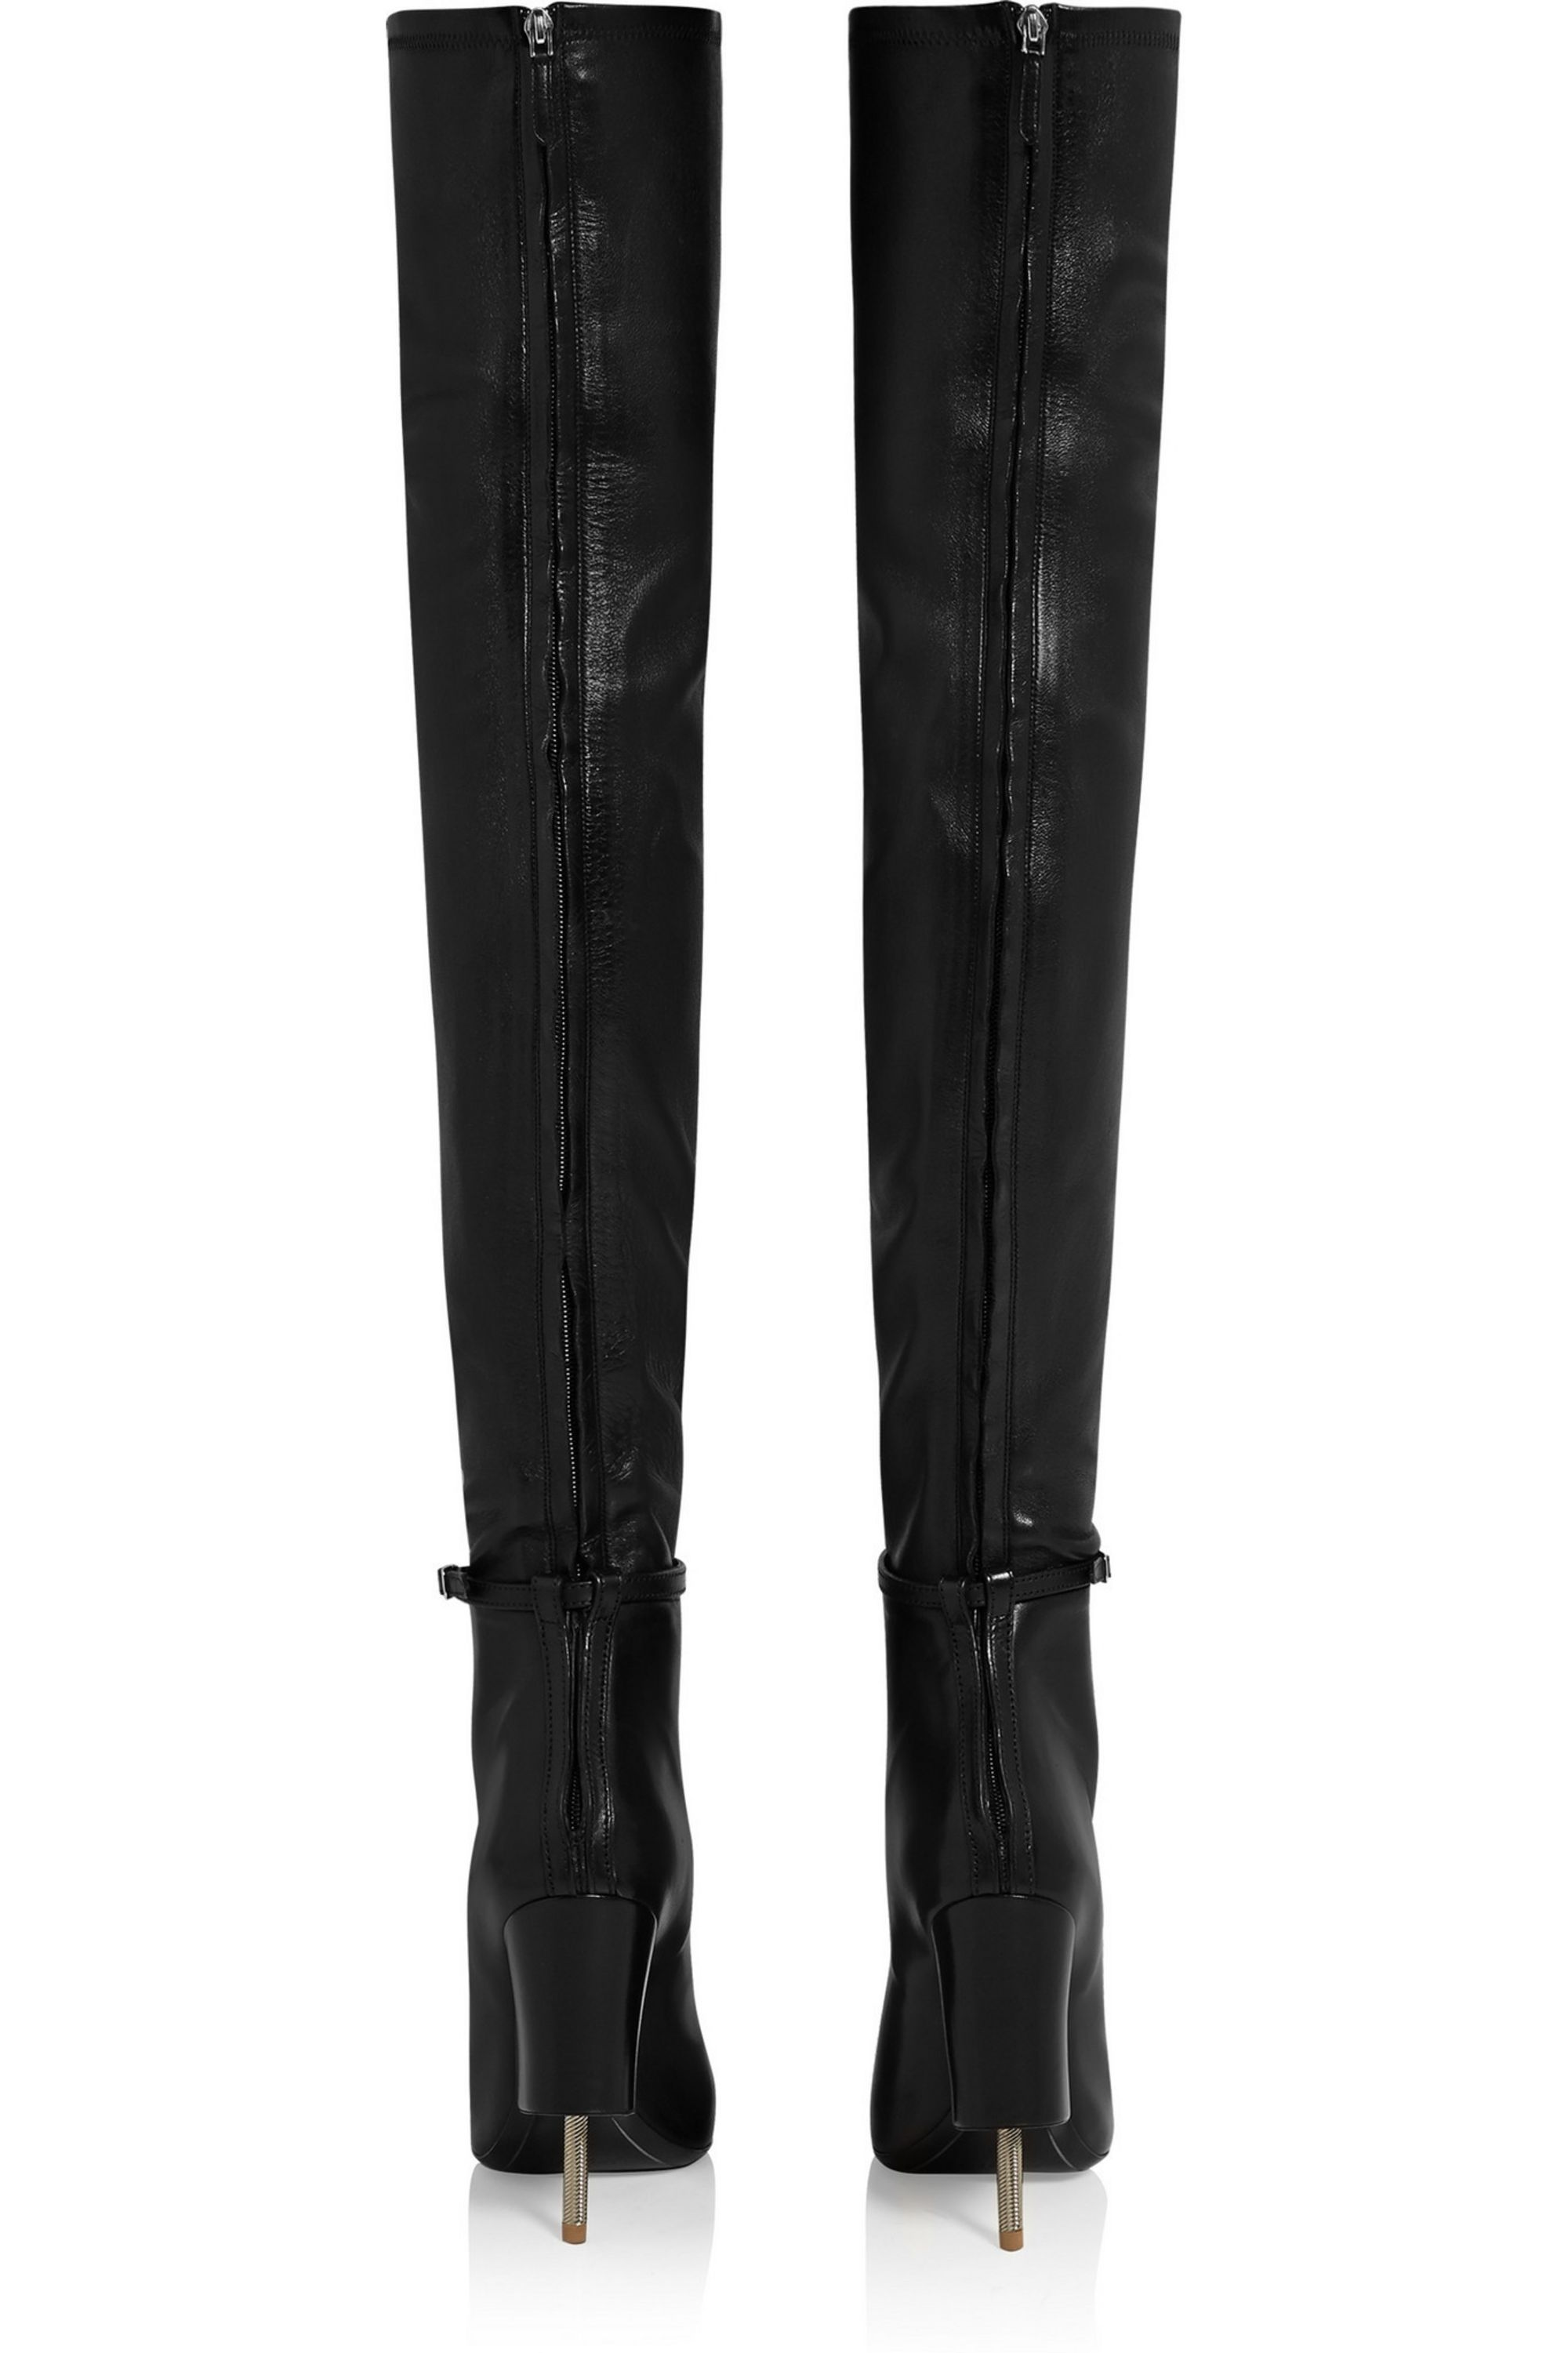 Givenchy Narlia thigh boots in black leather